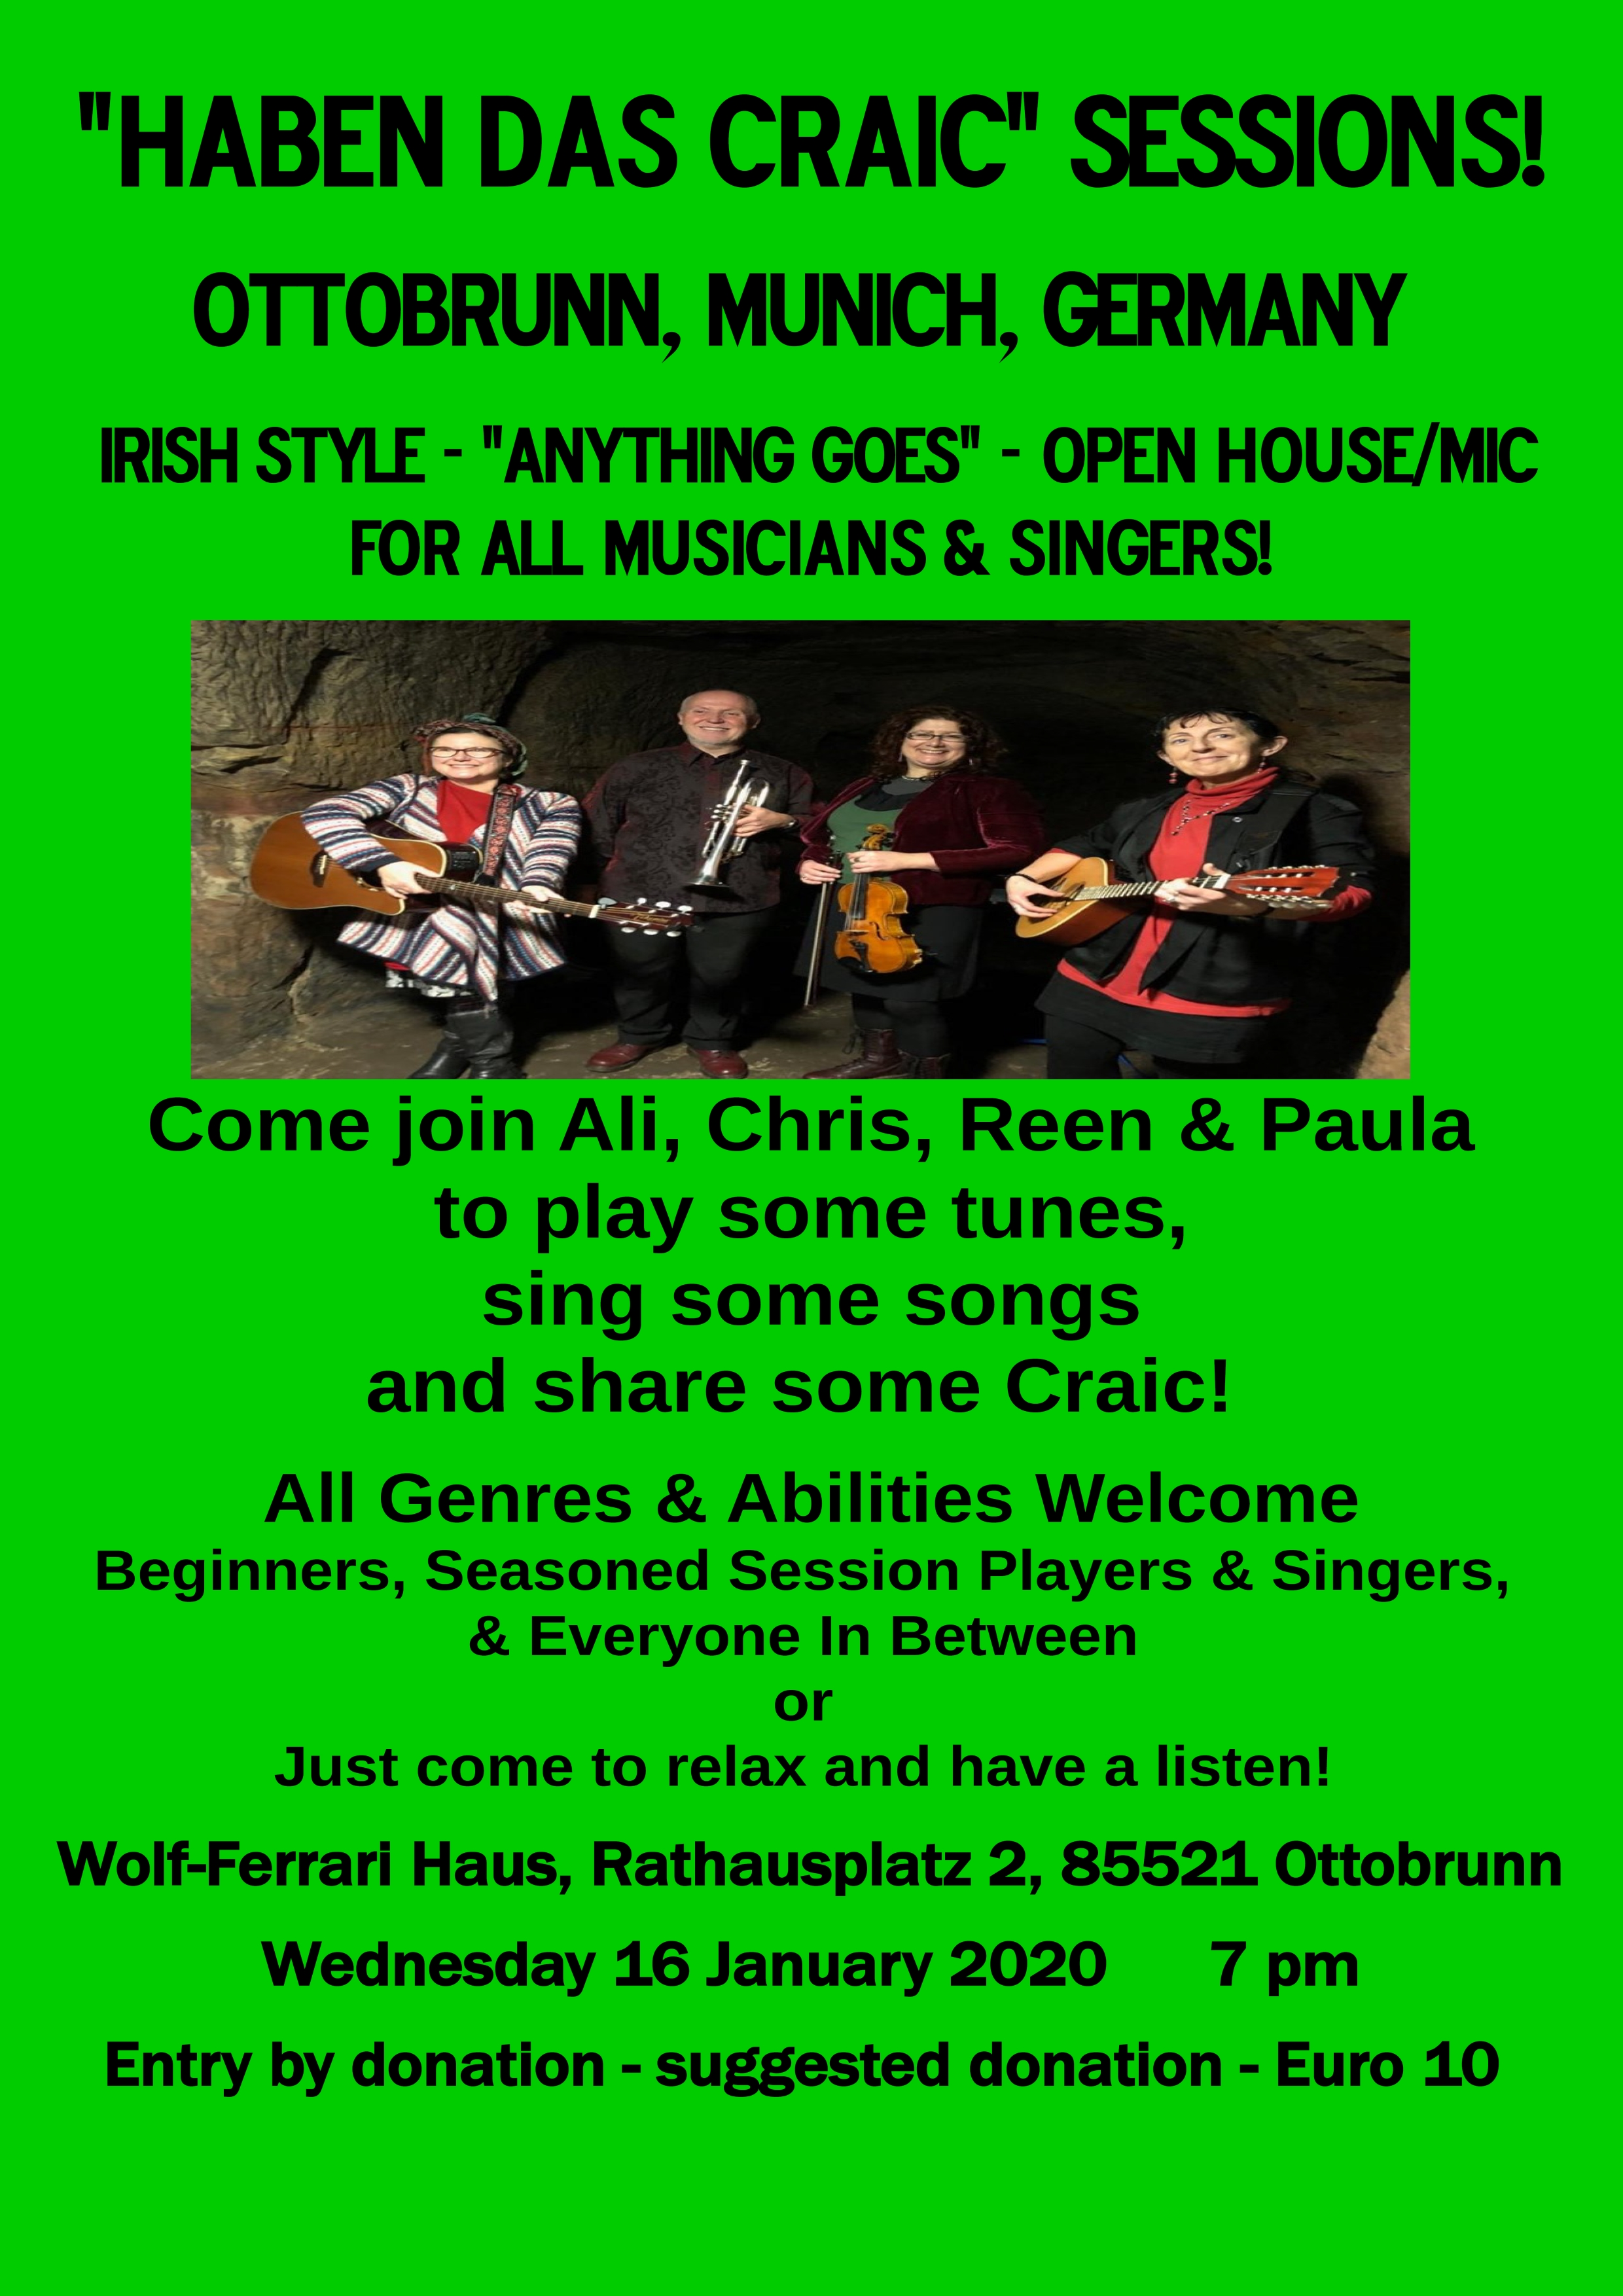 Havin The Craic Sessions in Ottobrun 16.01.2020 poster